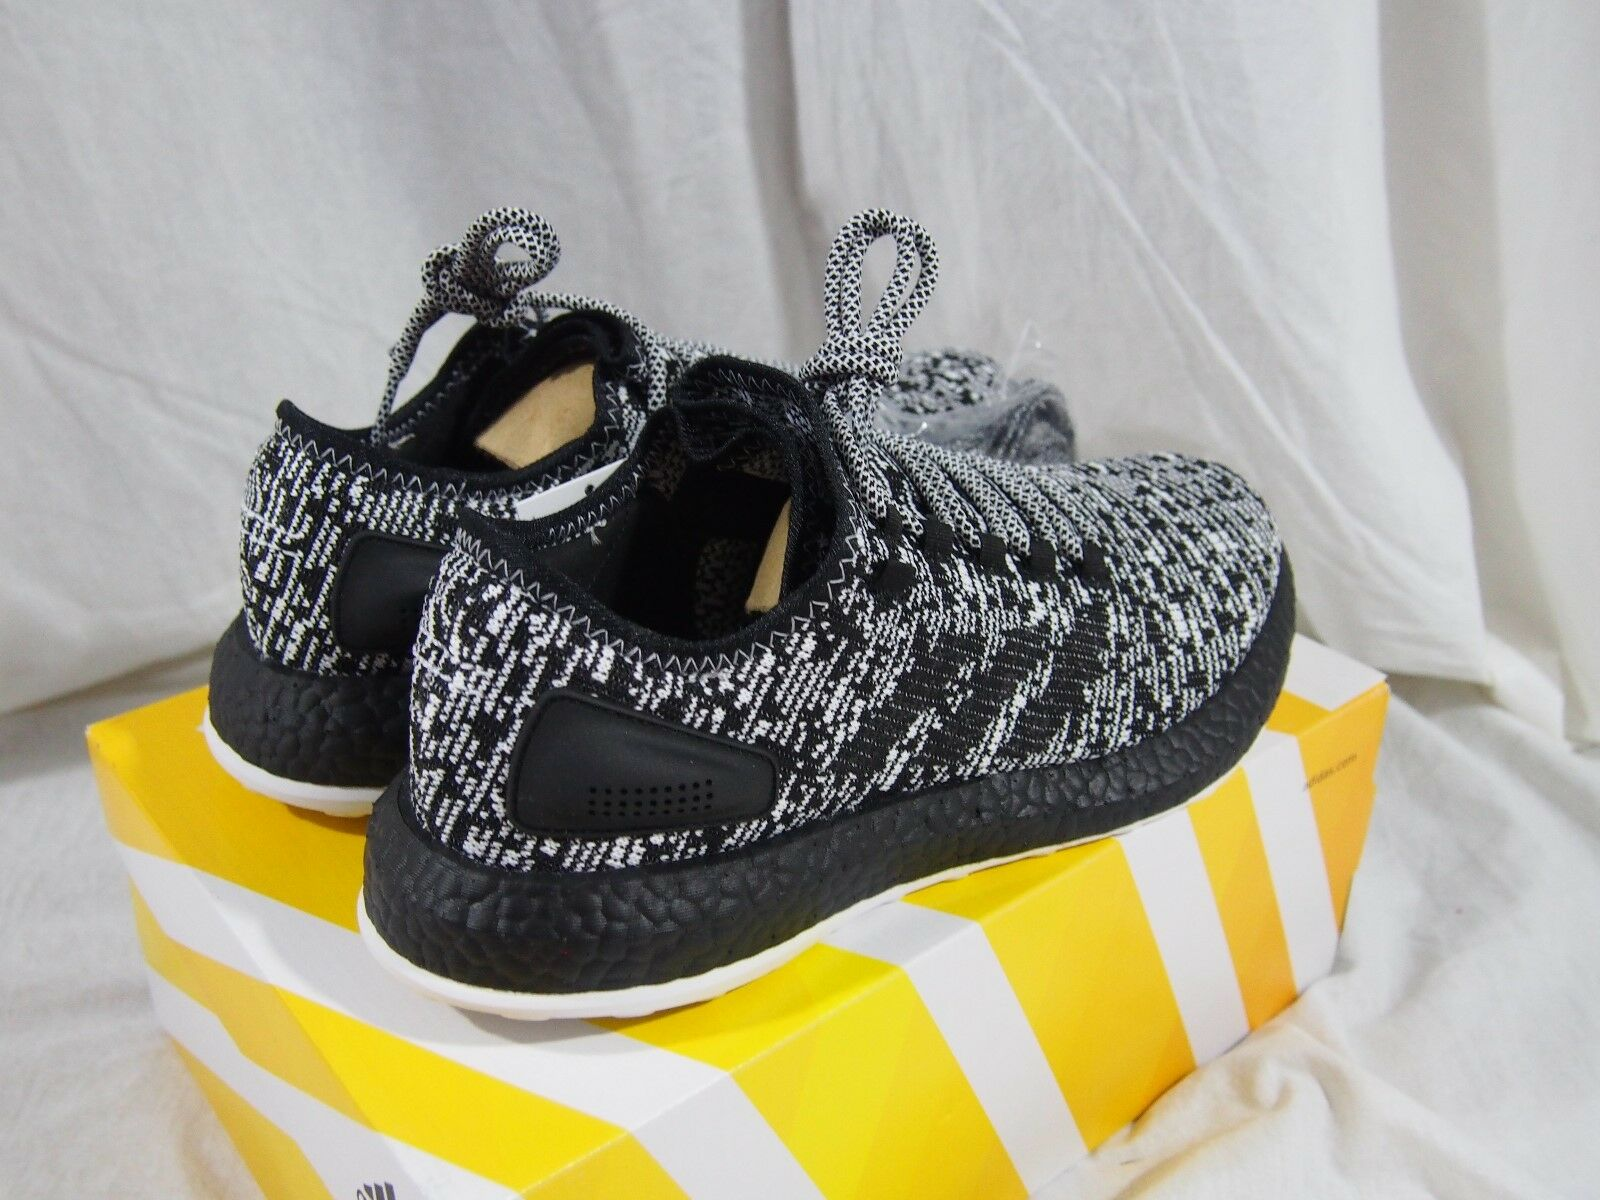 94aeeefb72cf3 adidas Pure Boost Ltd Oreo S80704 10 for sale online